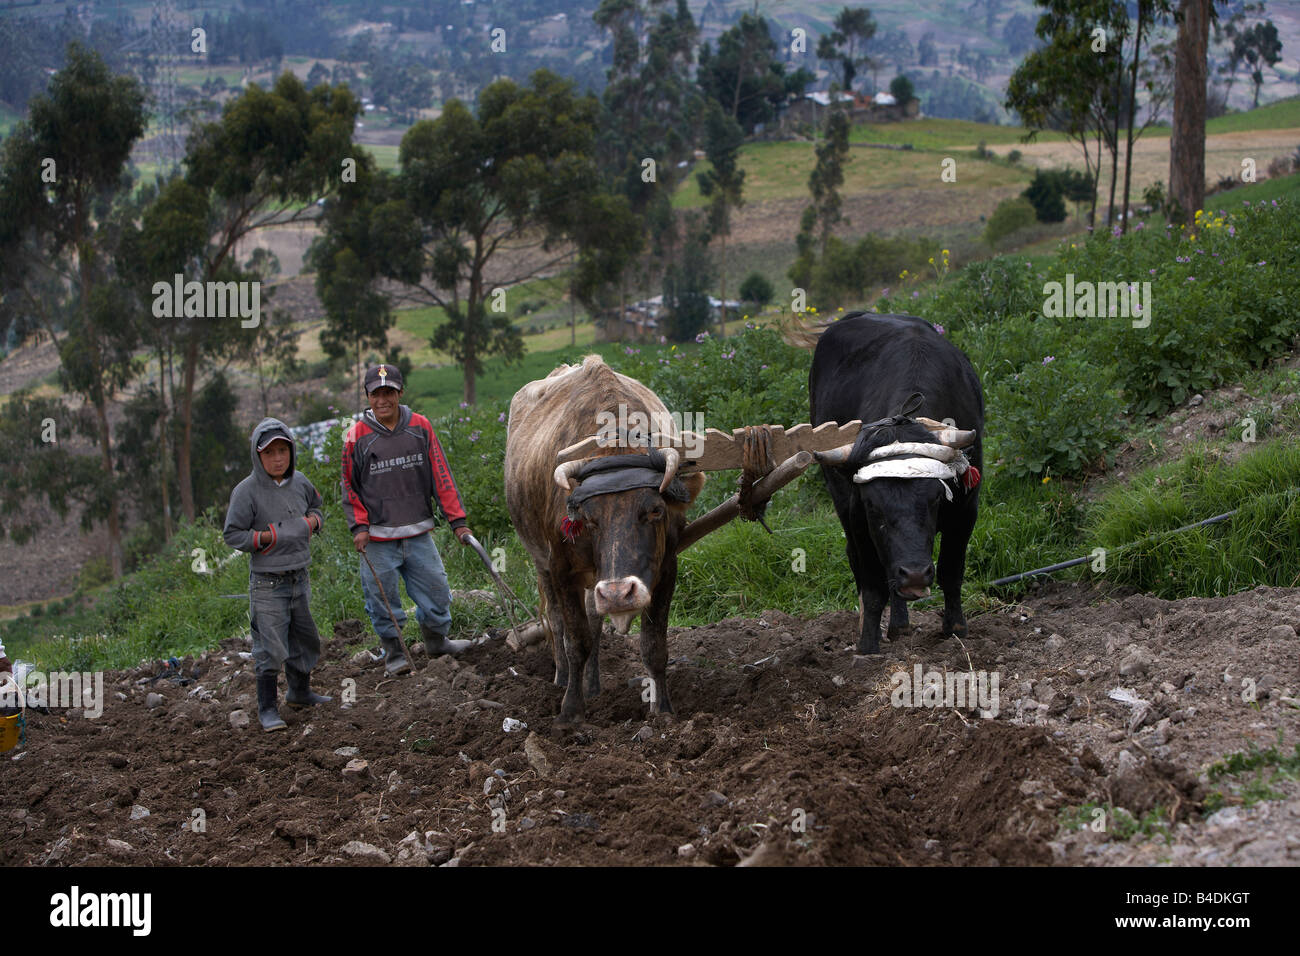 Children with Bulls farming corn, Andes Mountains, Ecuador - Stock Image